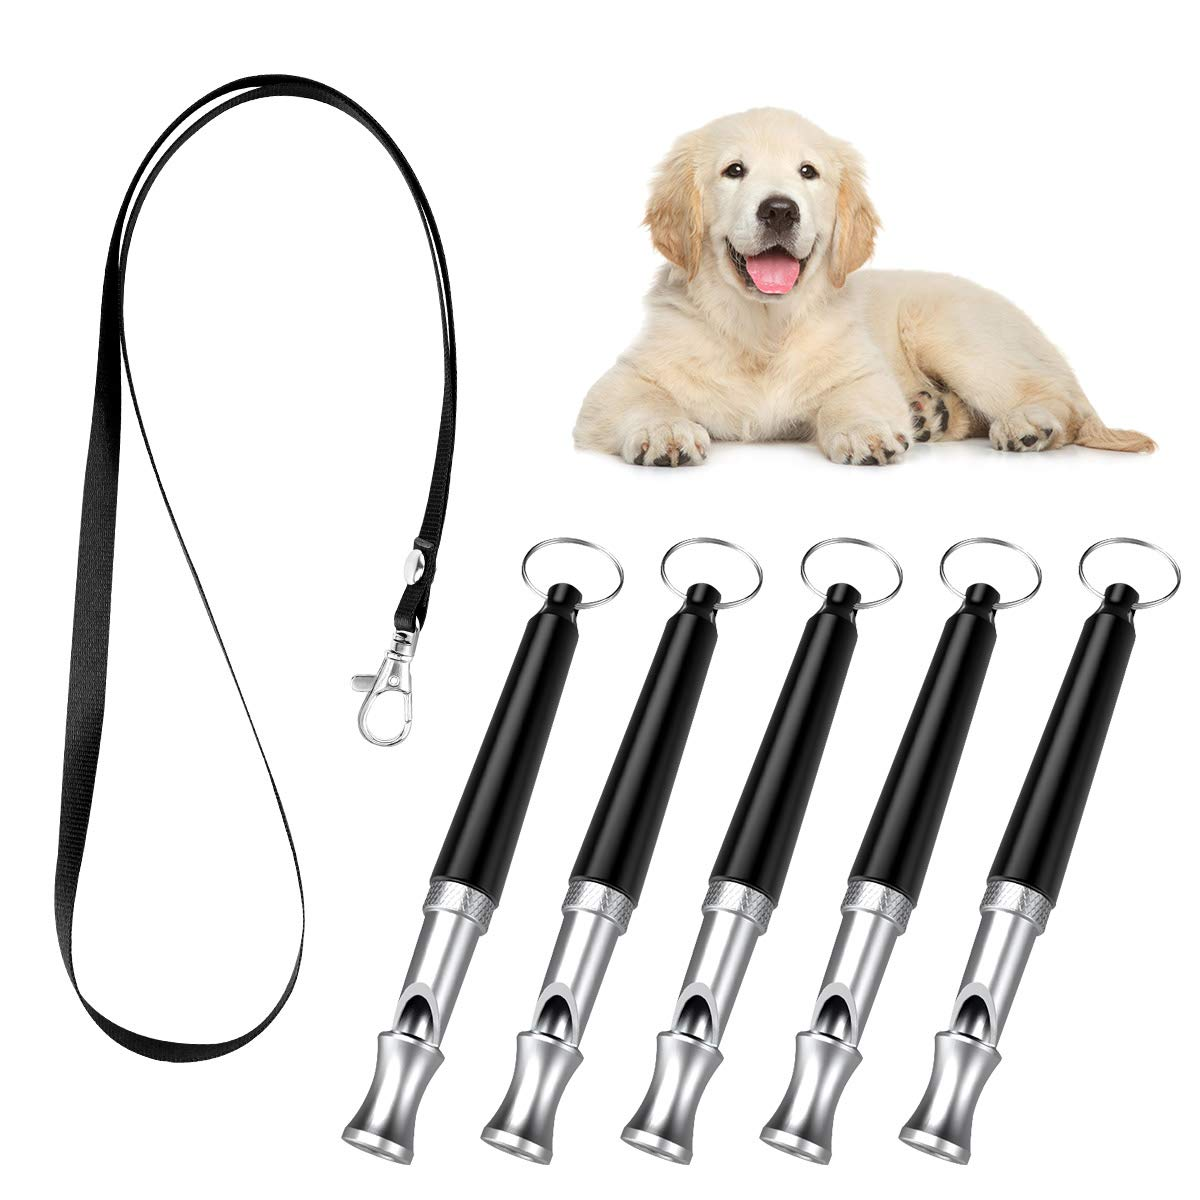 PAWABOO Dog Training Whistle 5 Pack, Professional Ultrasonic High Pitch Adjustable Volume Dog Train Whistle to Stop Barking, Silent Dog Bark Control Tool for Training Pets with Lanyard Strap, Black by PAWABOO